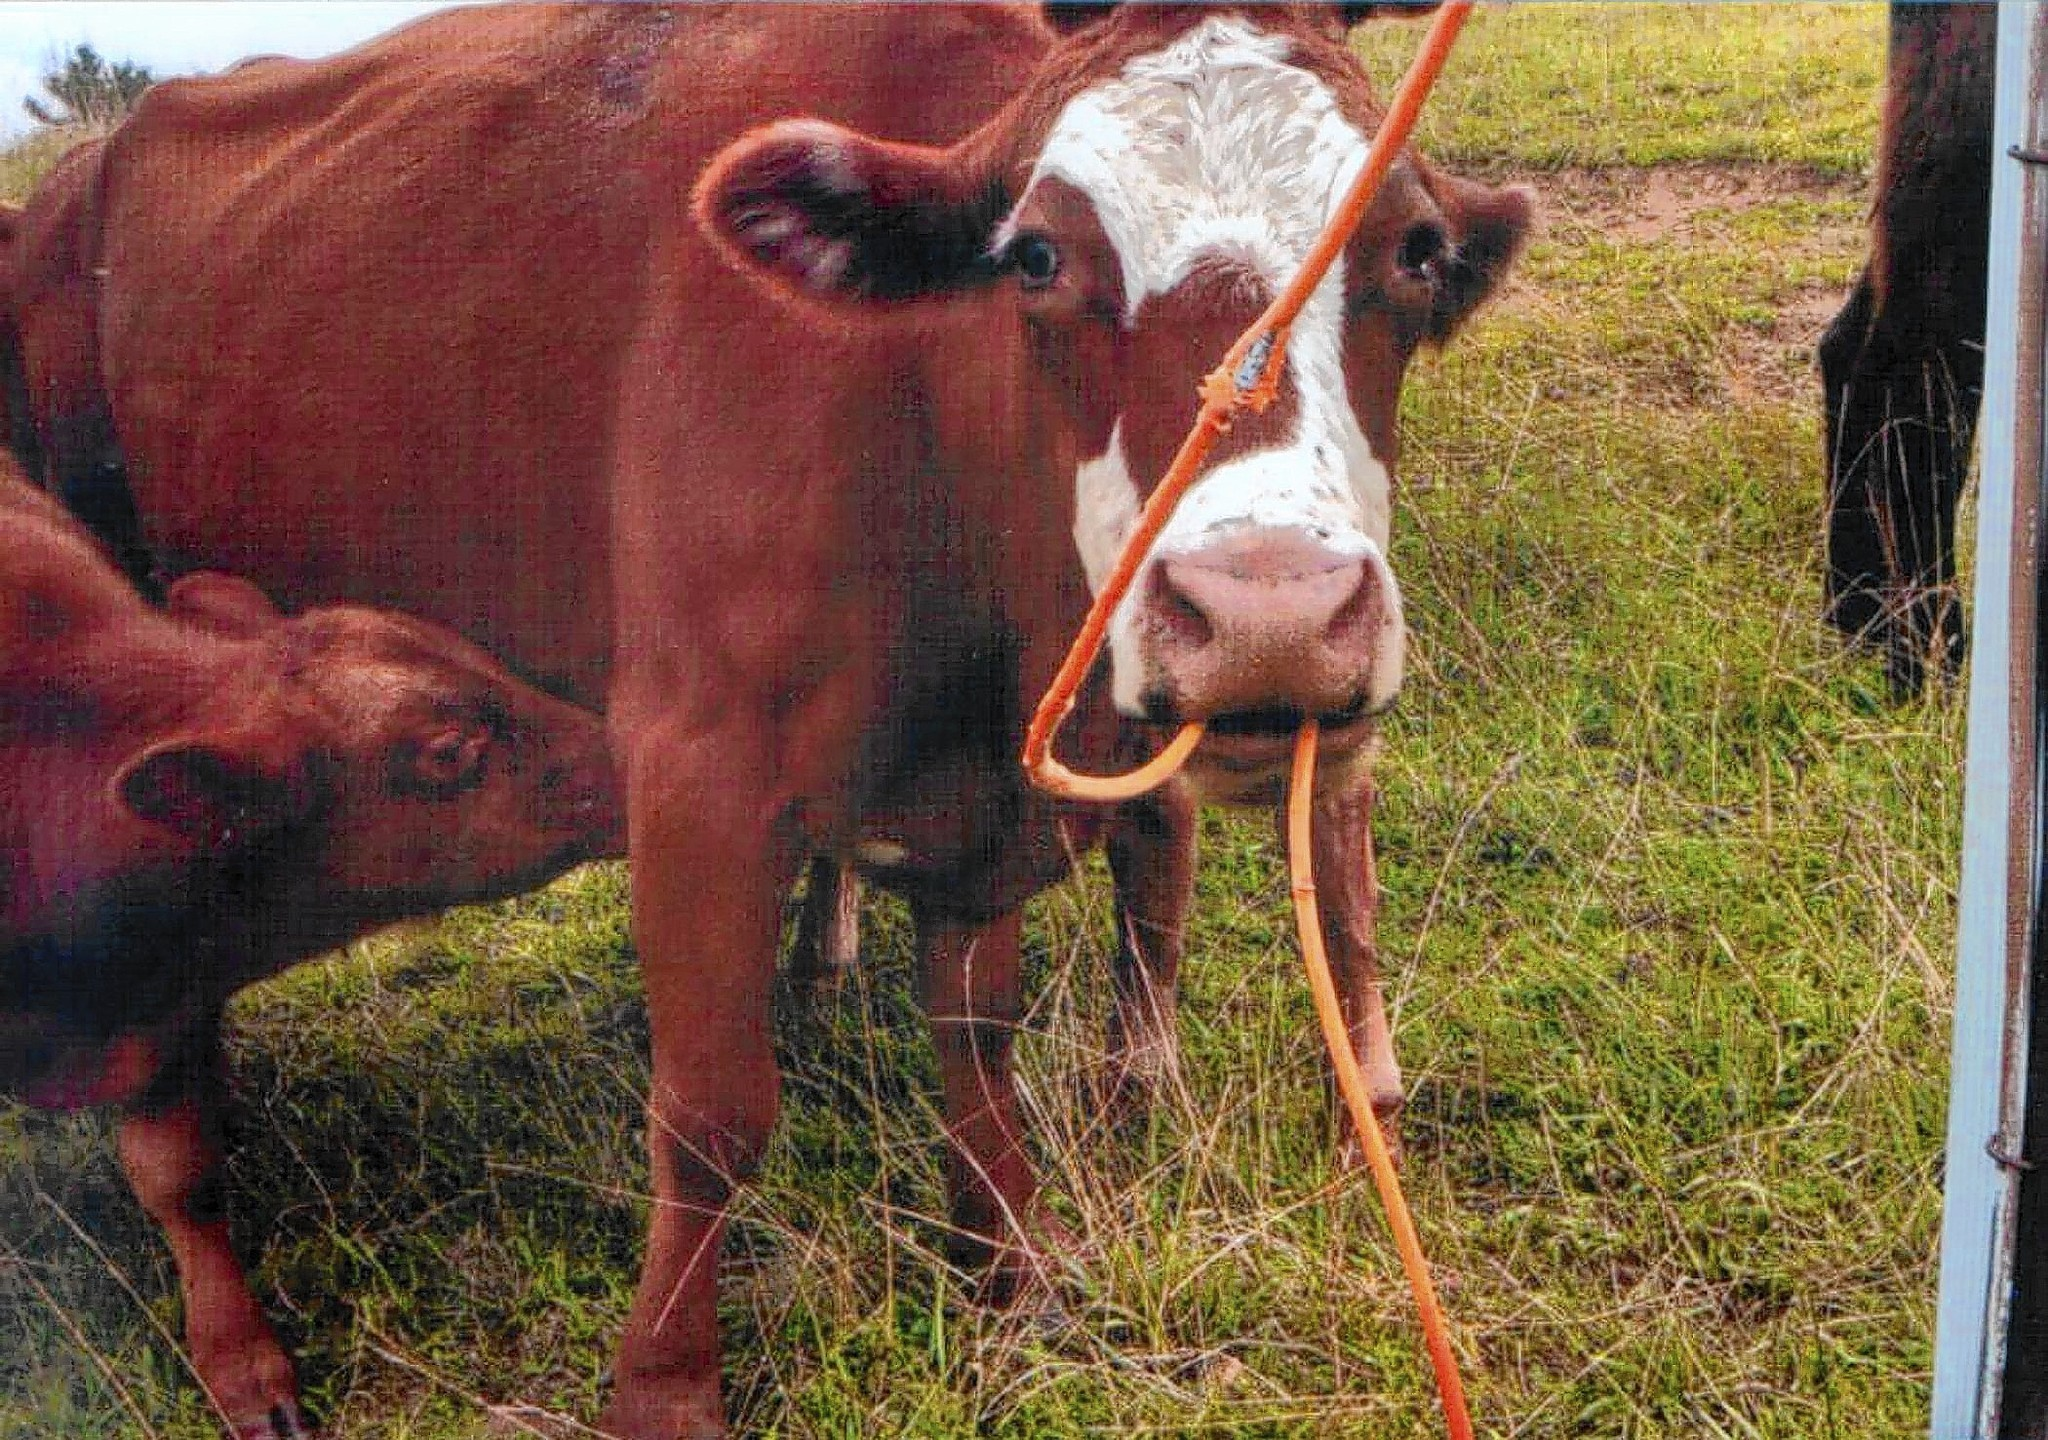 Udder disconnect: Carroll cows chews cable, not cud - Carroll County ...